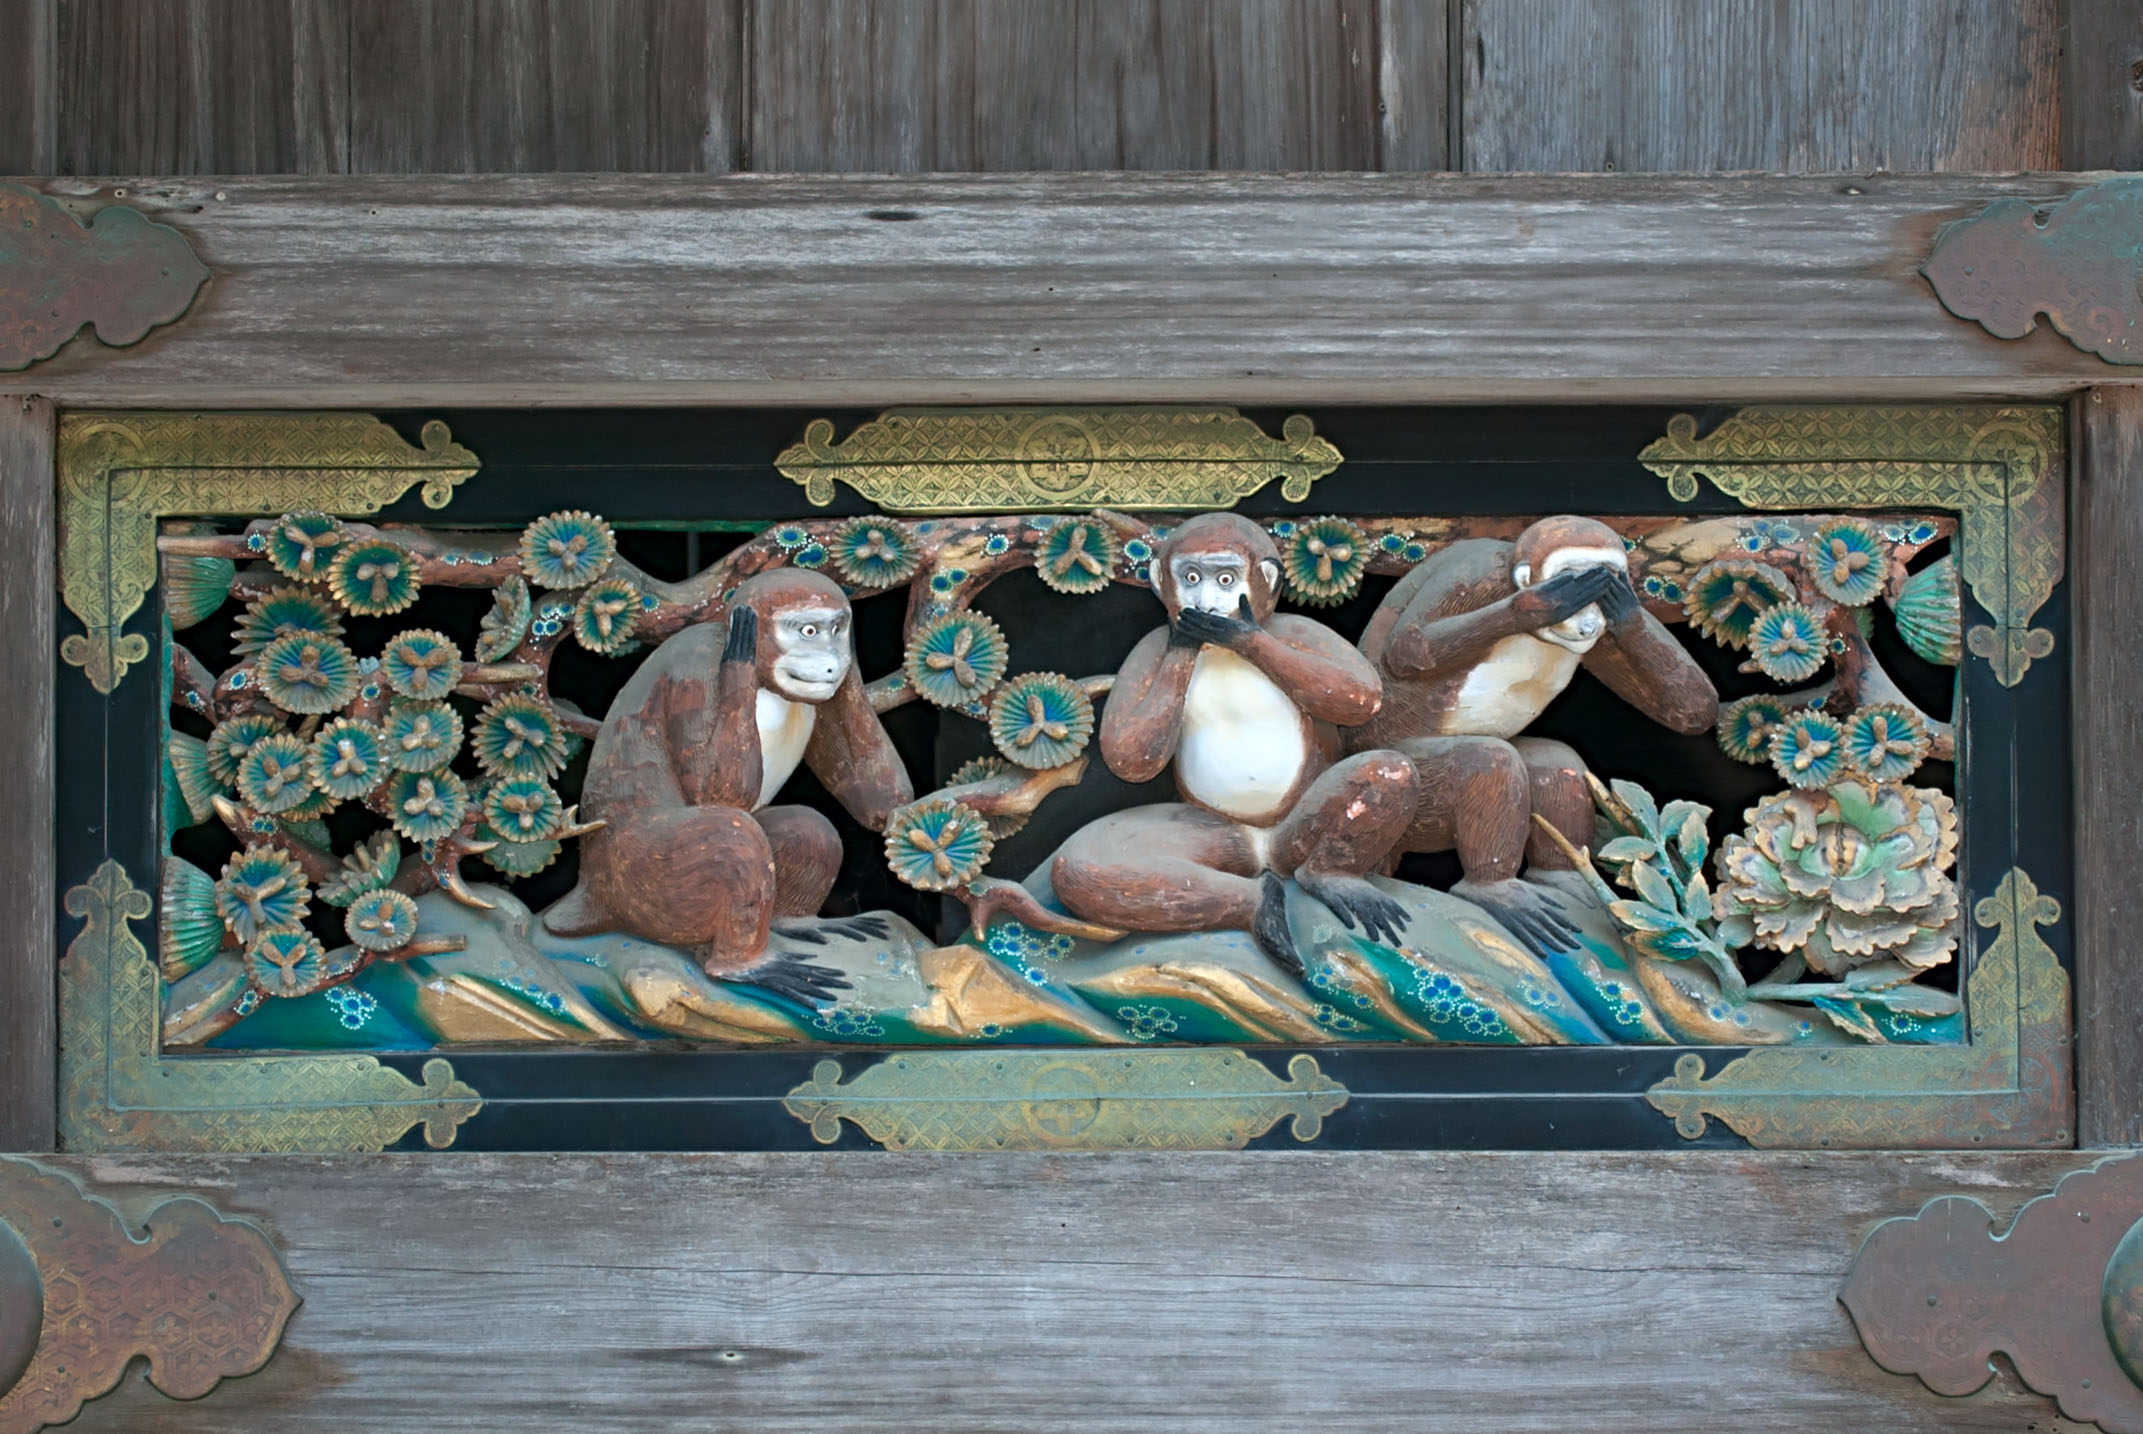 Three Wise Monkeys [三匹の猿]